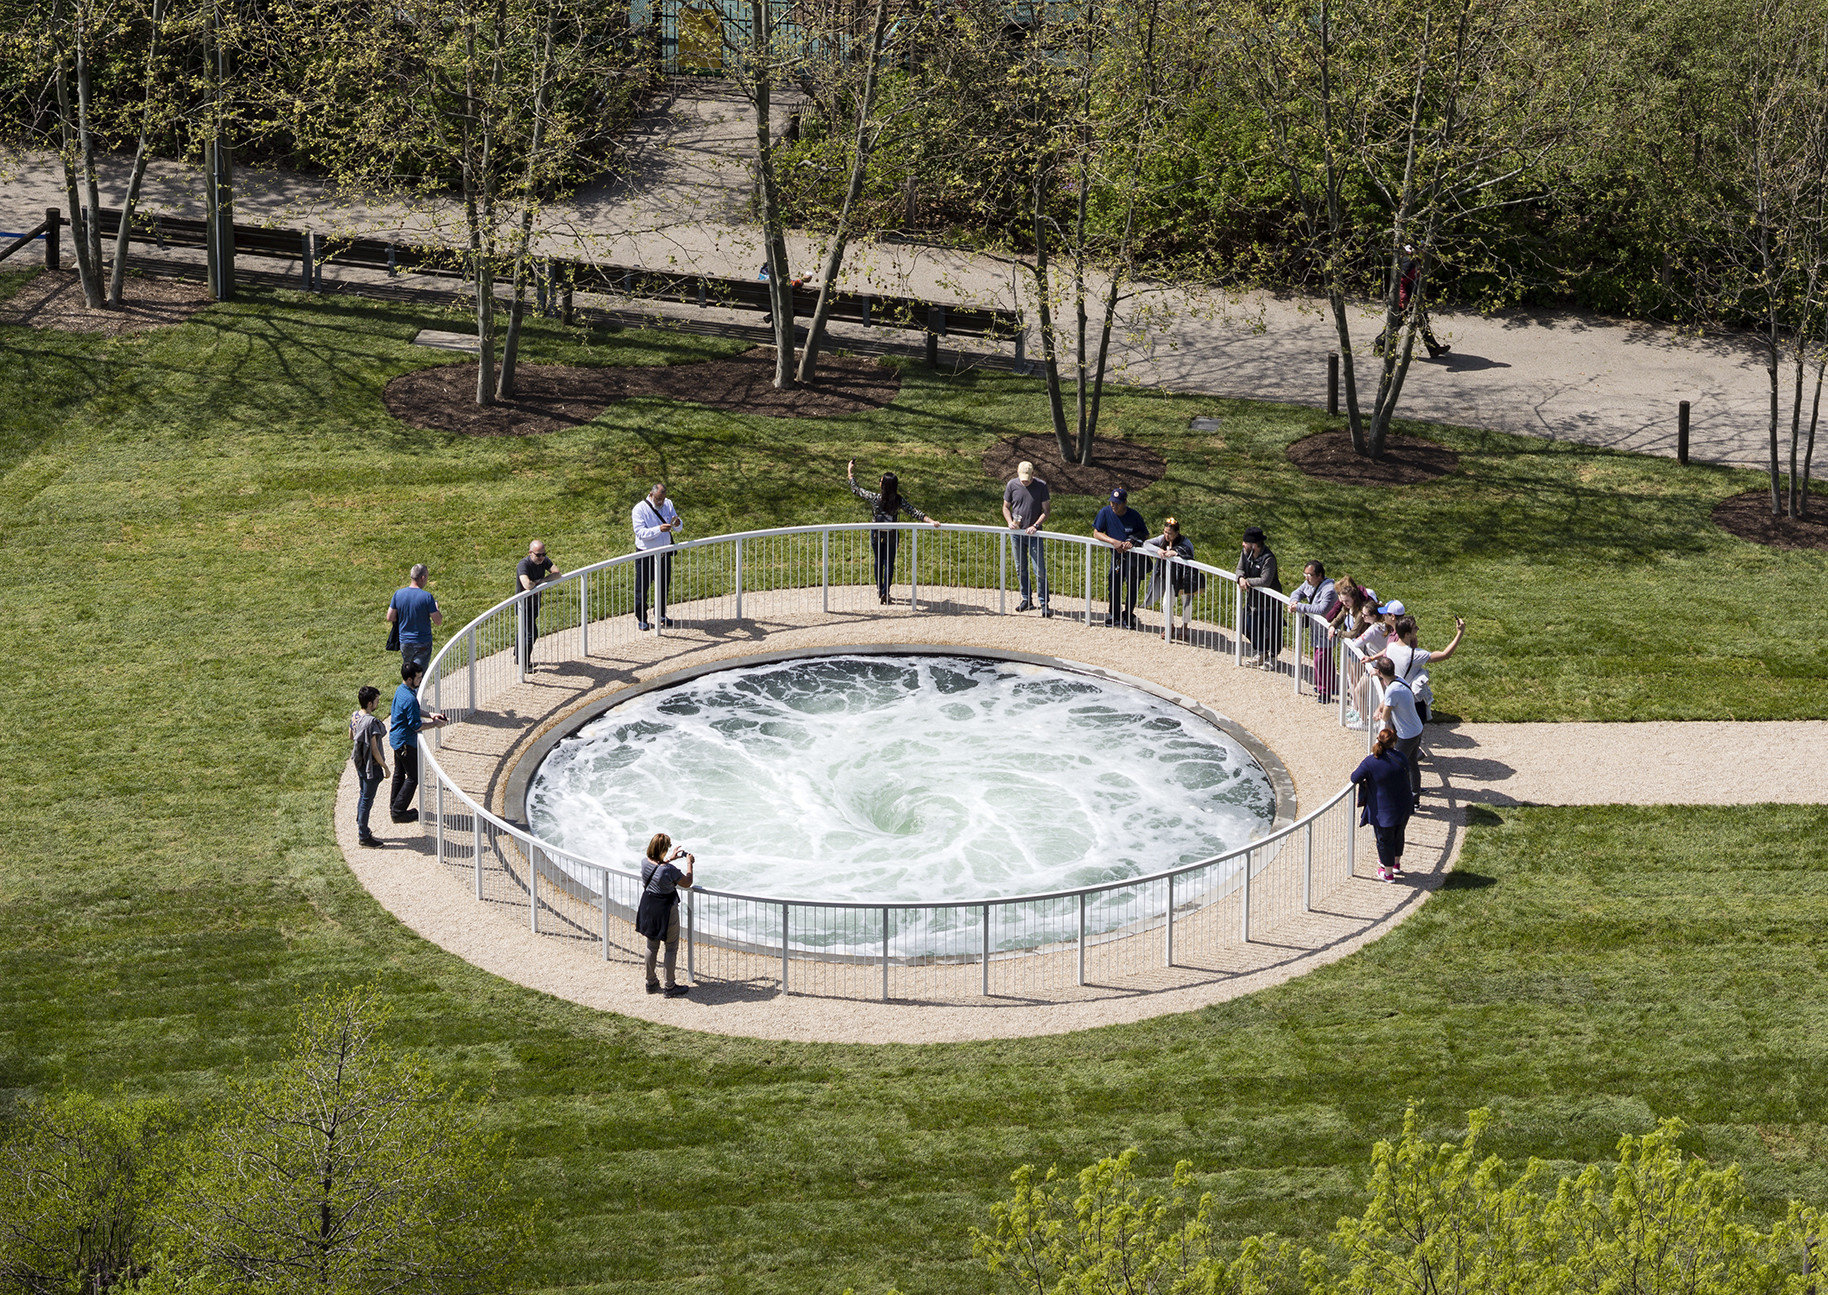 grass Offbeat tree outdoor park water water resources leisure water feature recreation grassy lush